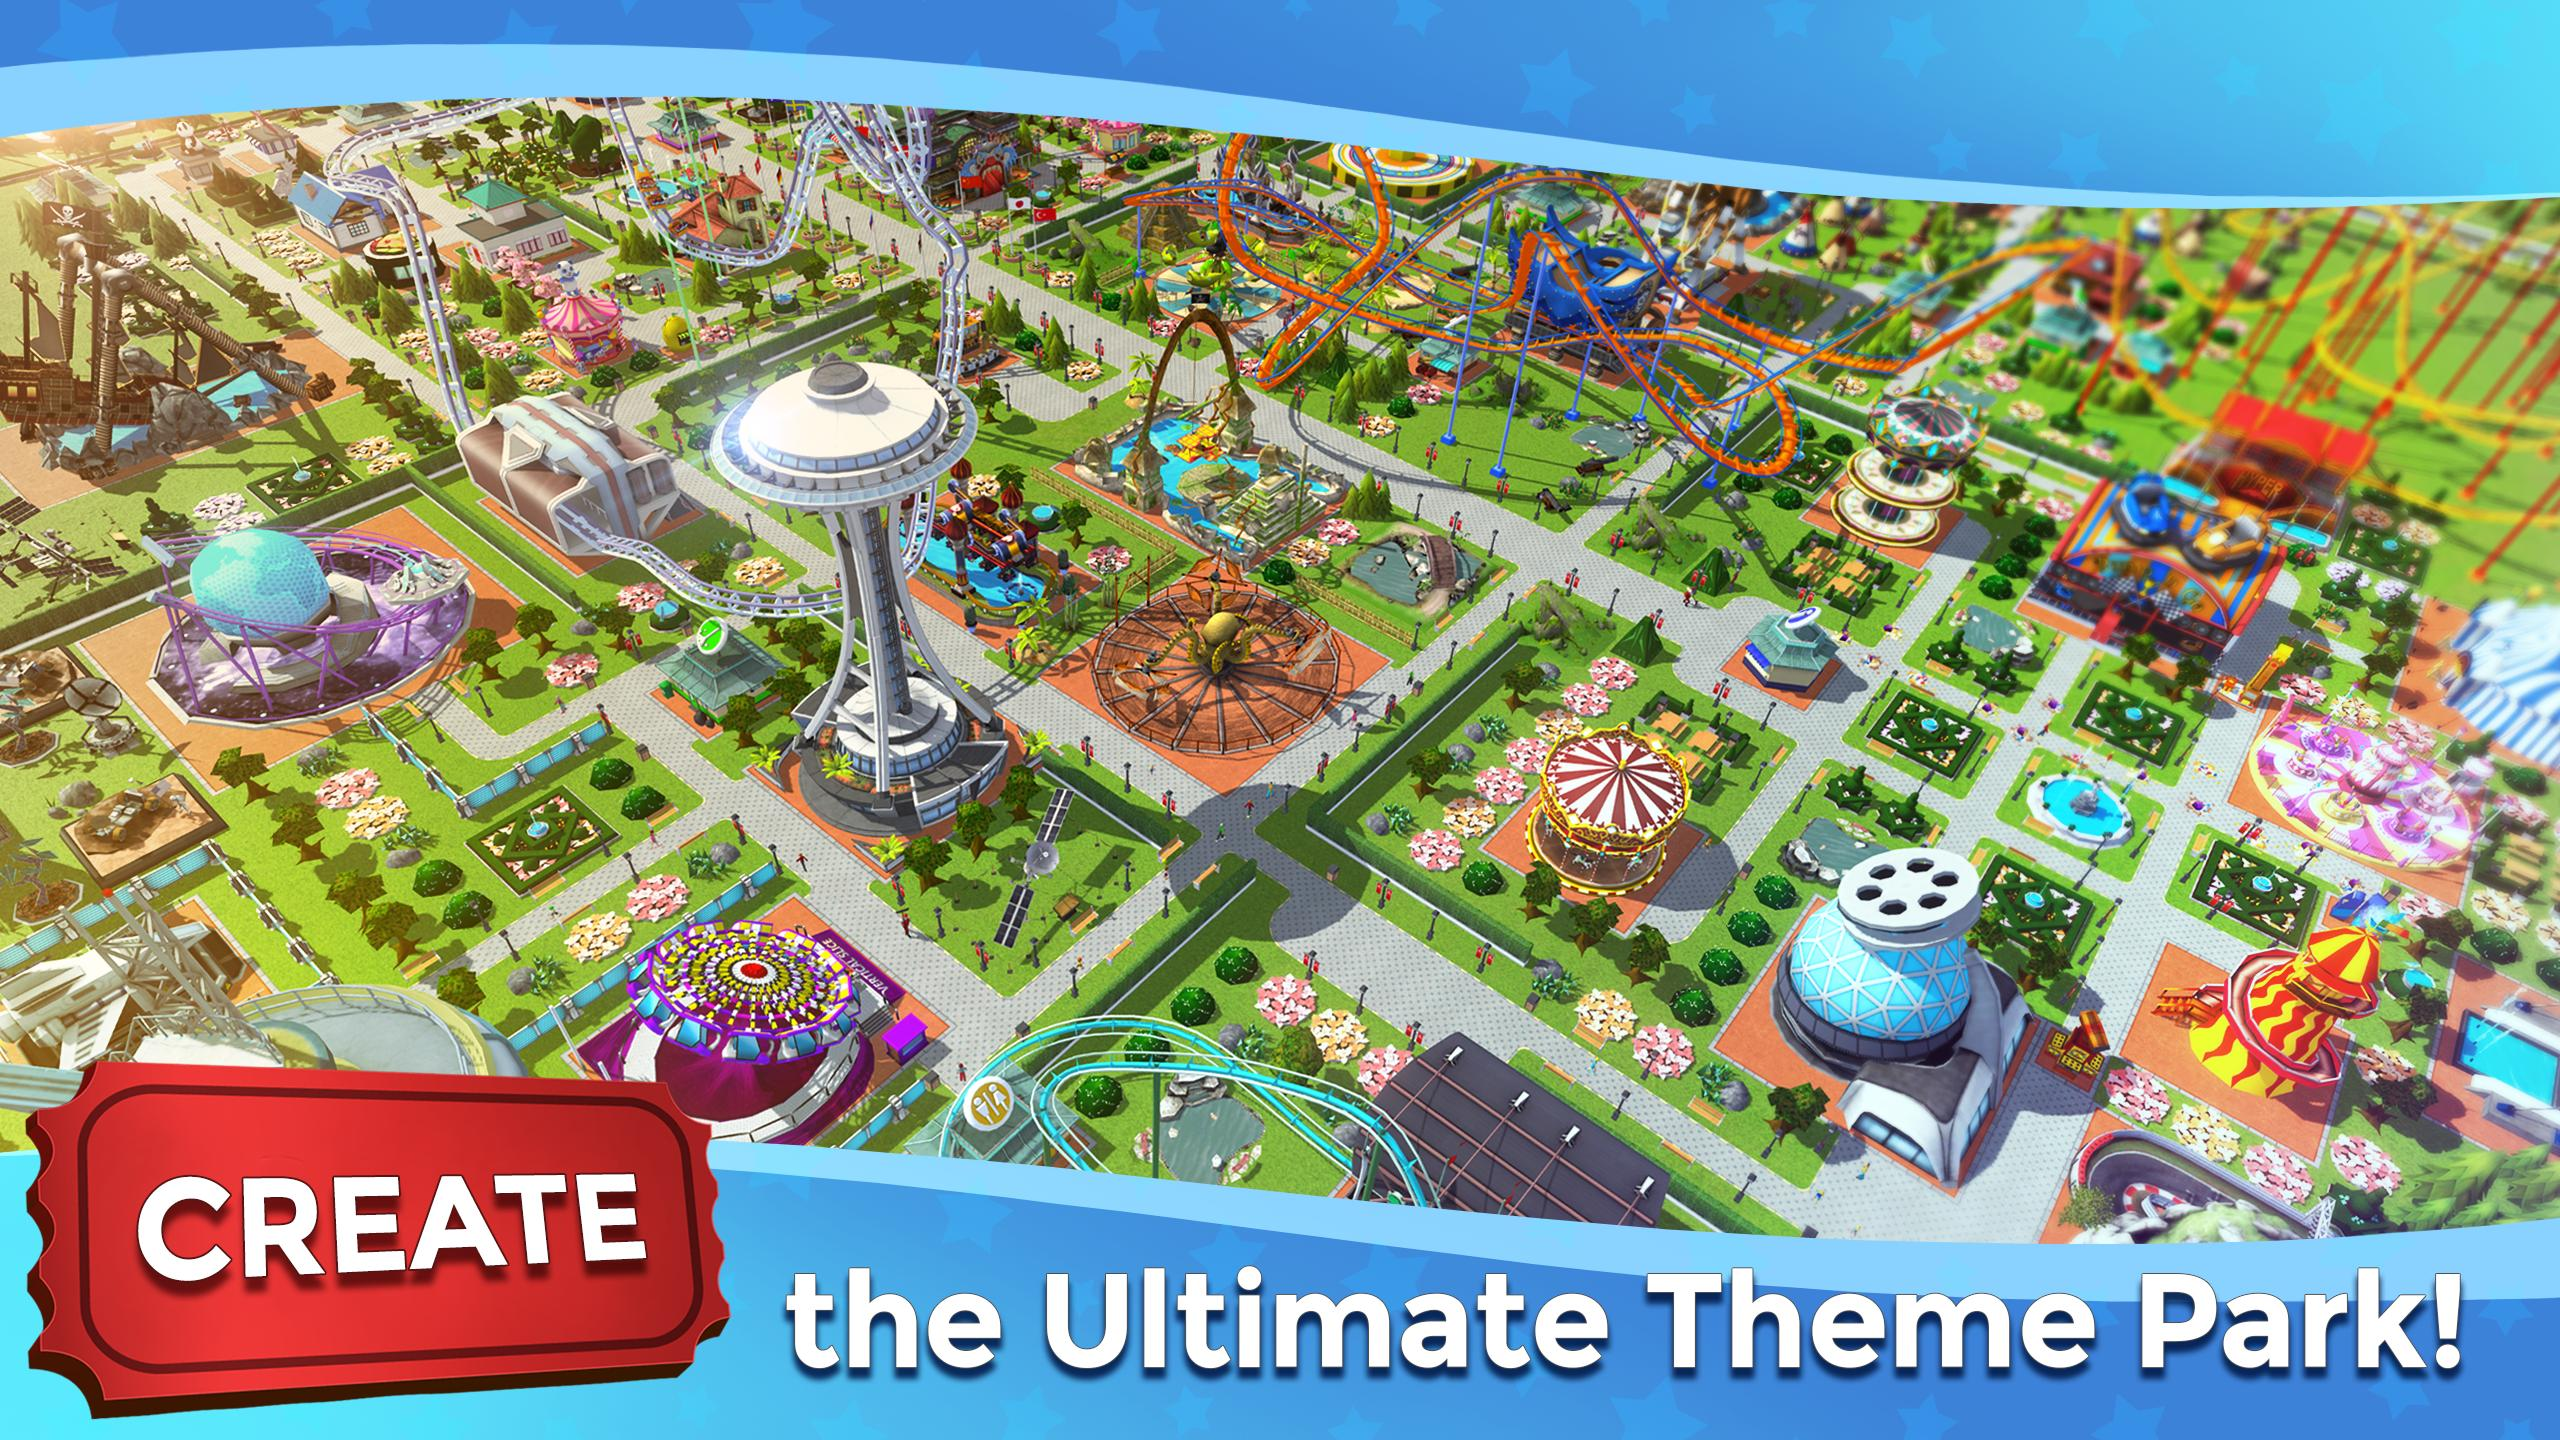 RollerCoaster Tycoon Touch - Build your Theme Park for